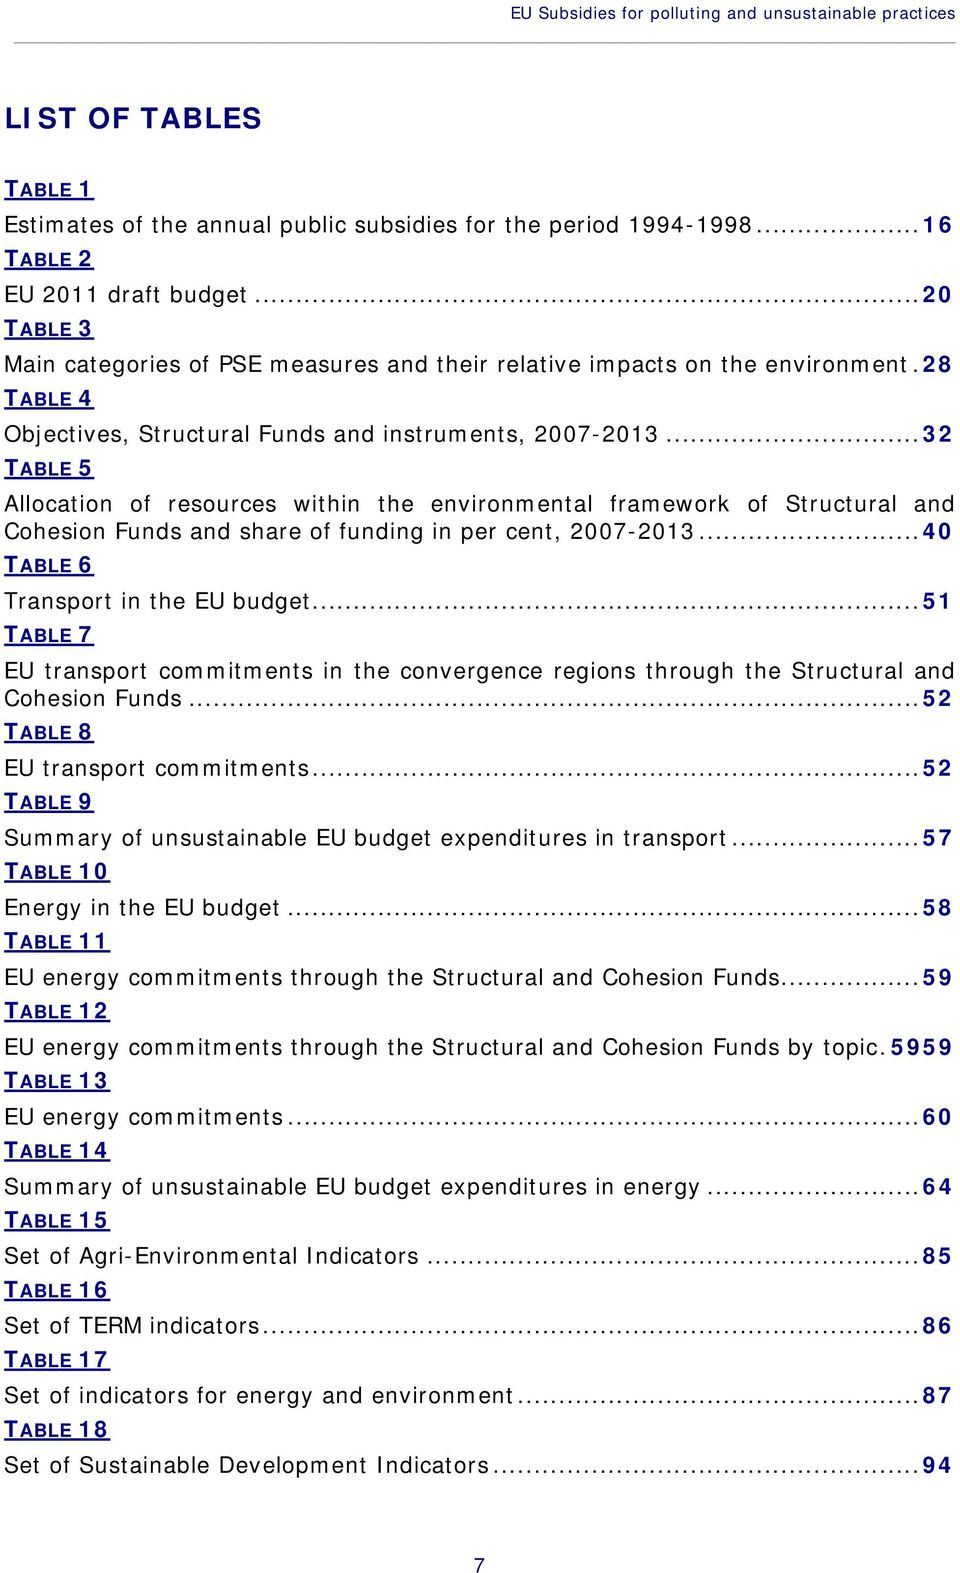 ..32 TABLE 5 Allcatin f resurces within the envirnmental framewrk f Structural and Chesin Funds and share f funding in per cent, 2007-2013...40 TABLE 6 Transprt in the EU budget.